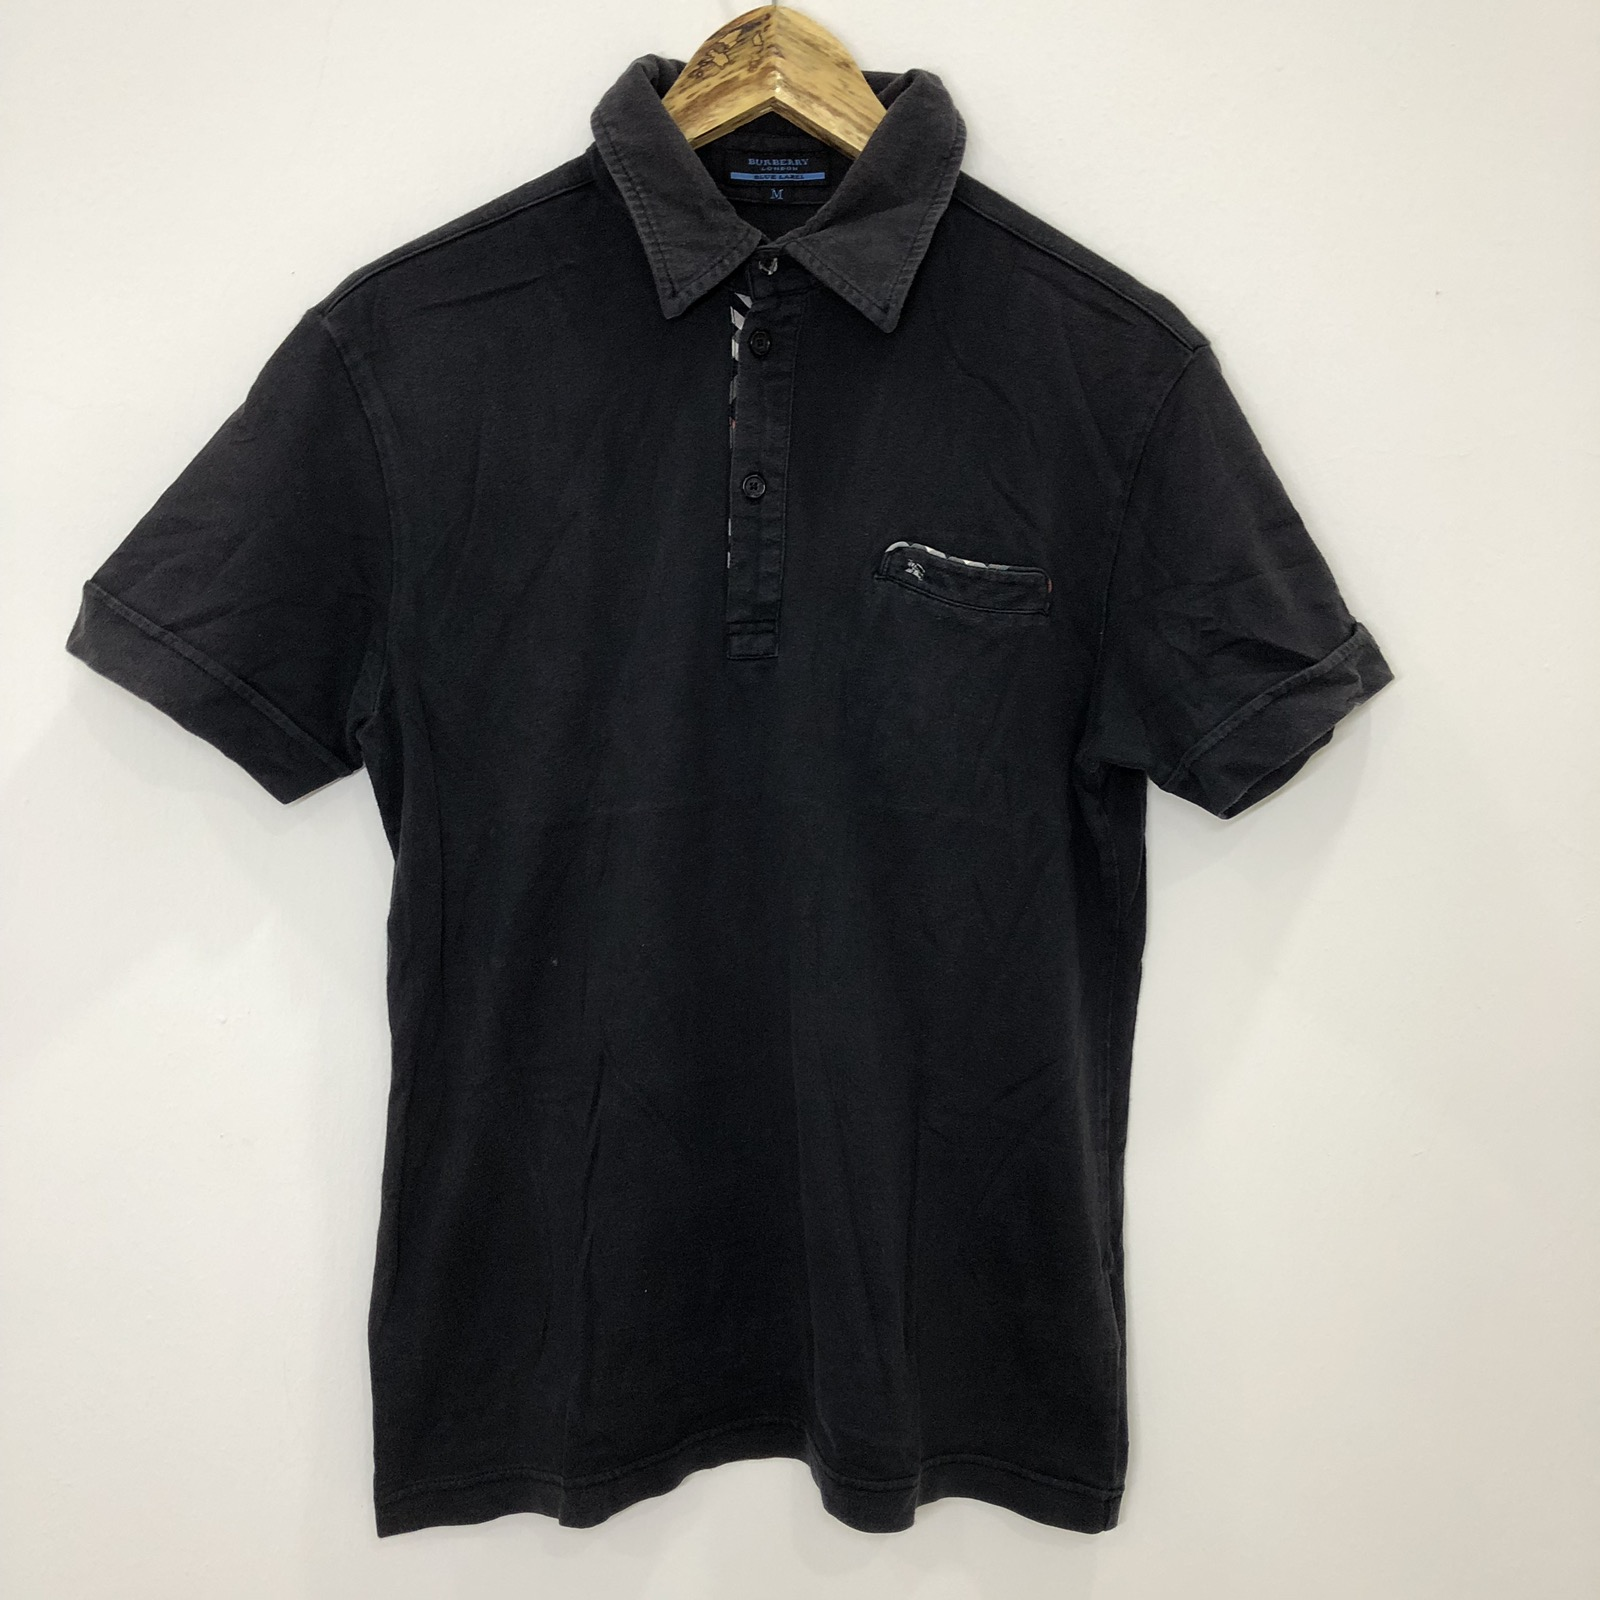 Burberry Burberry Blue Label Polo Shirt Size M Polos For Sale